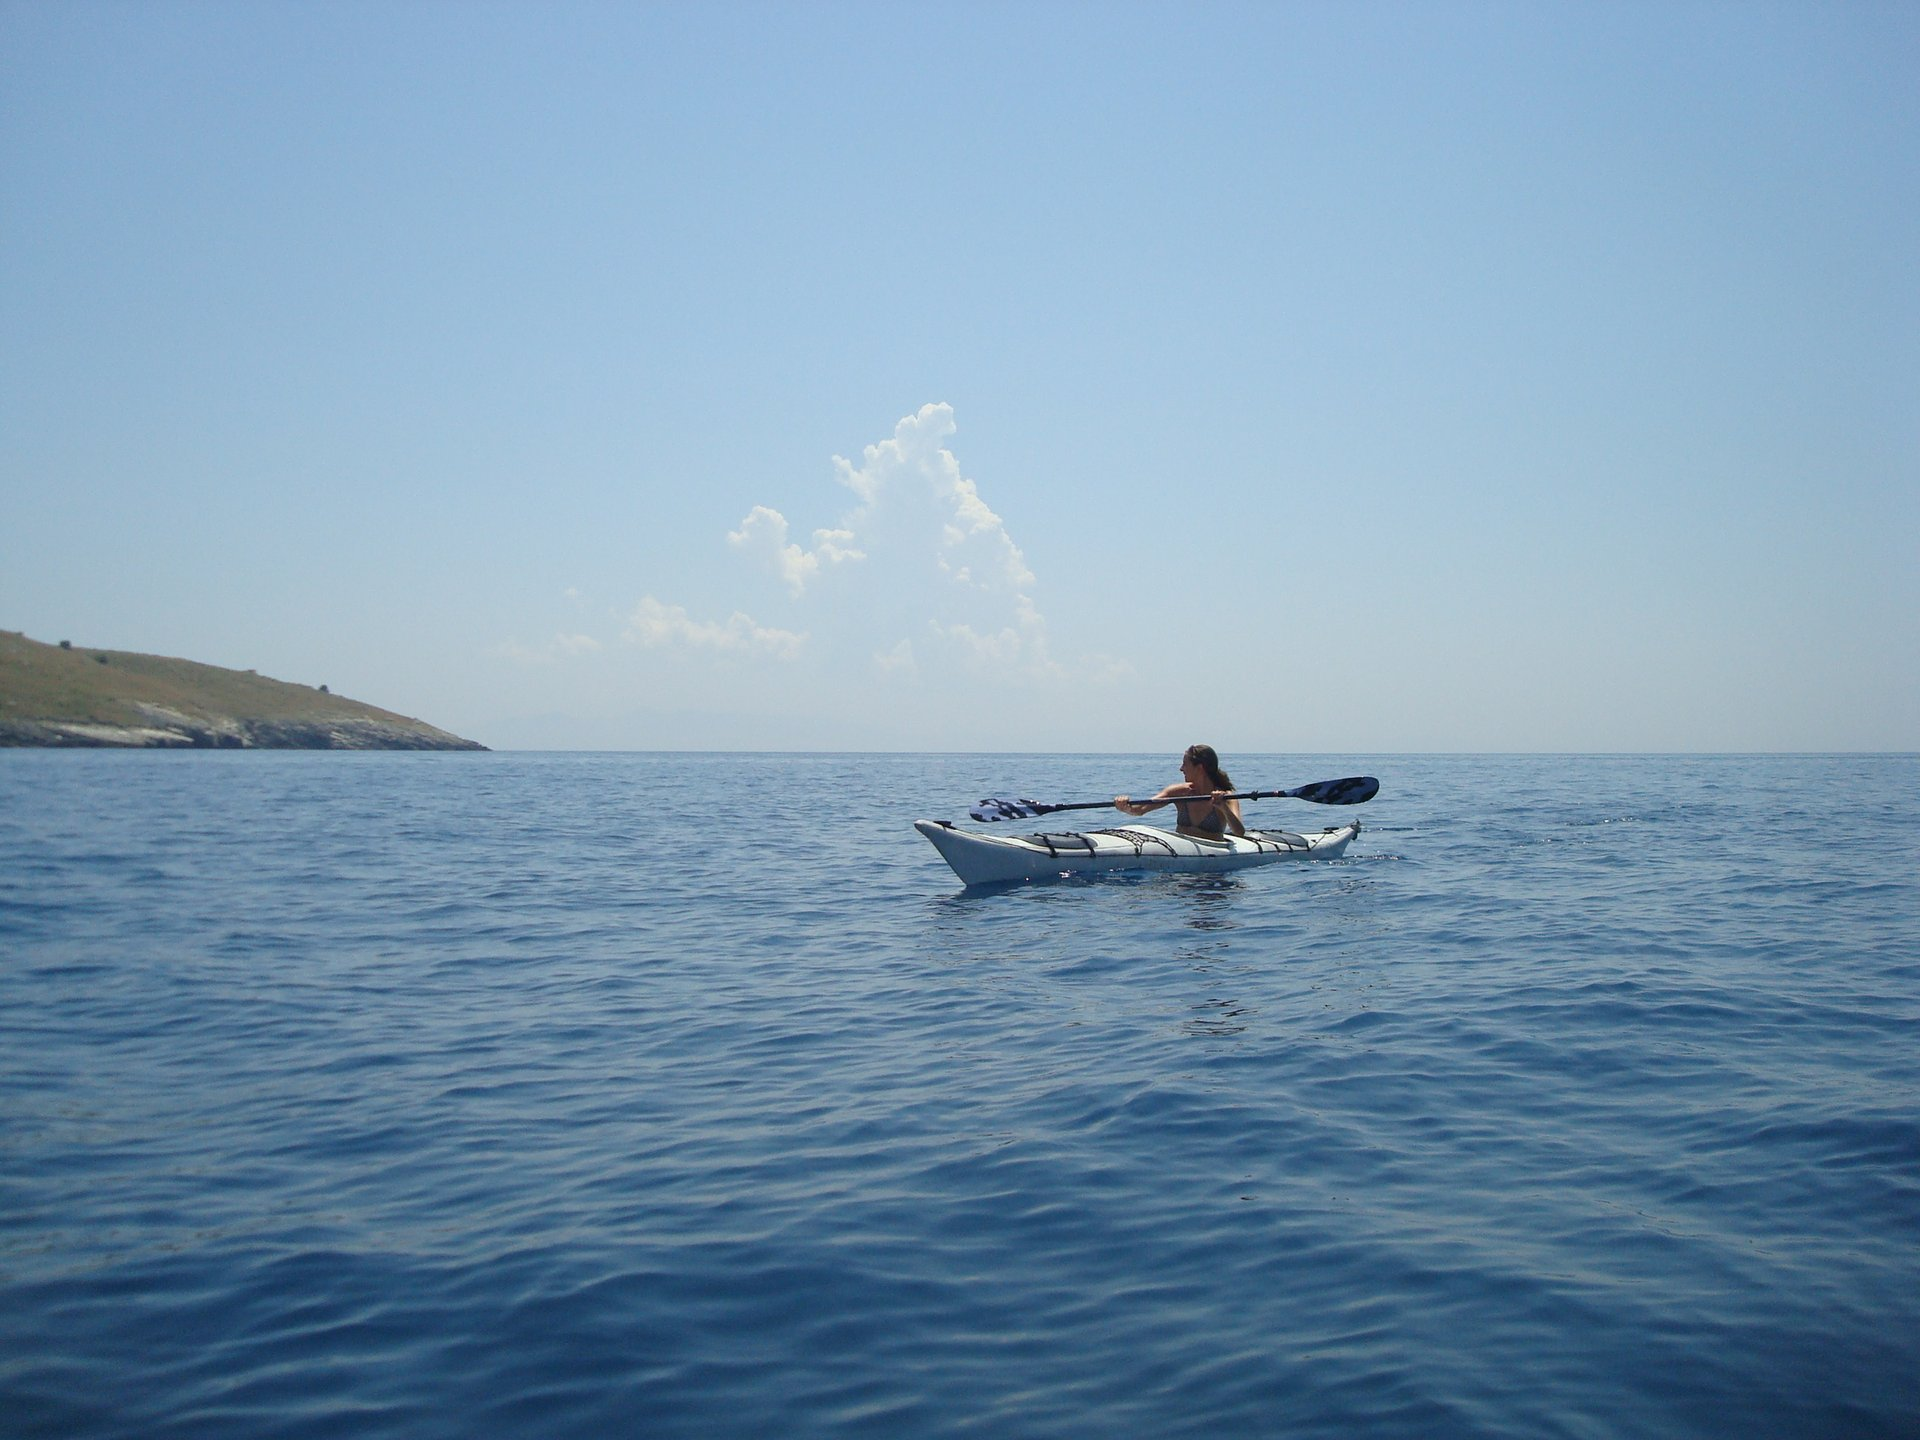 Kayaking in Albania 2020 - Best Time